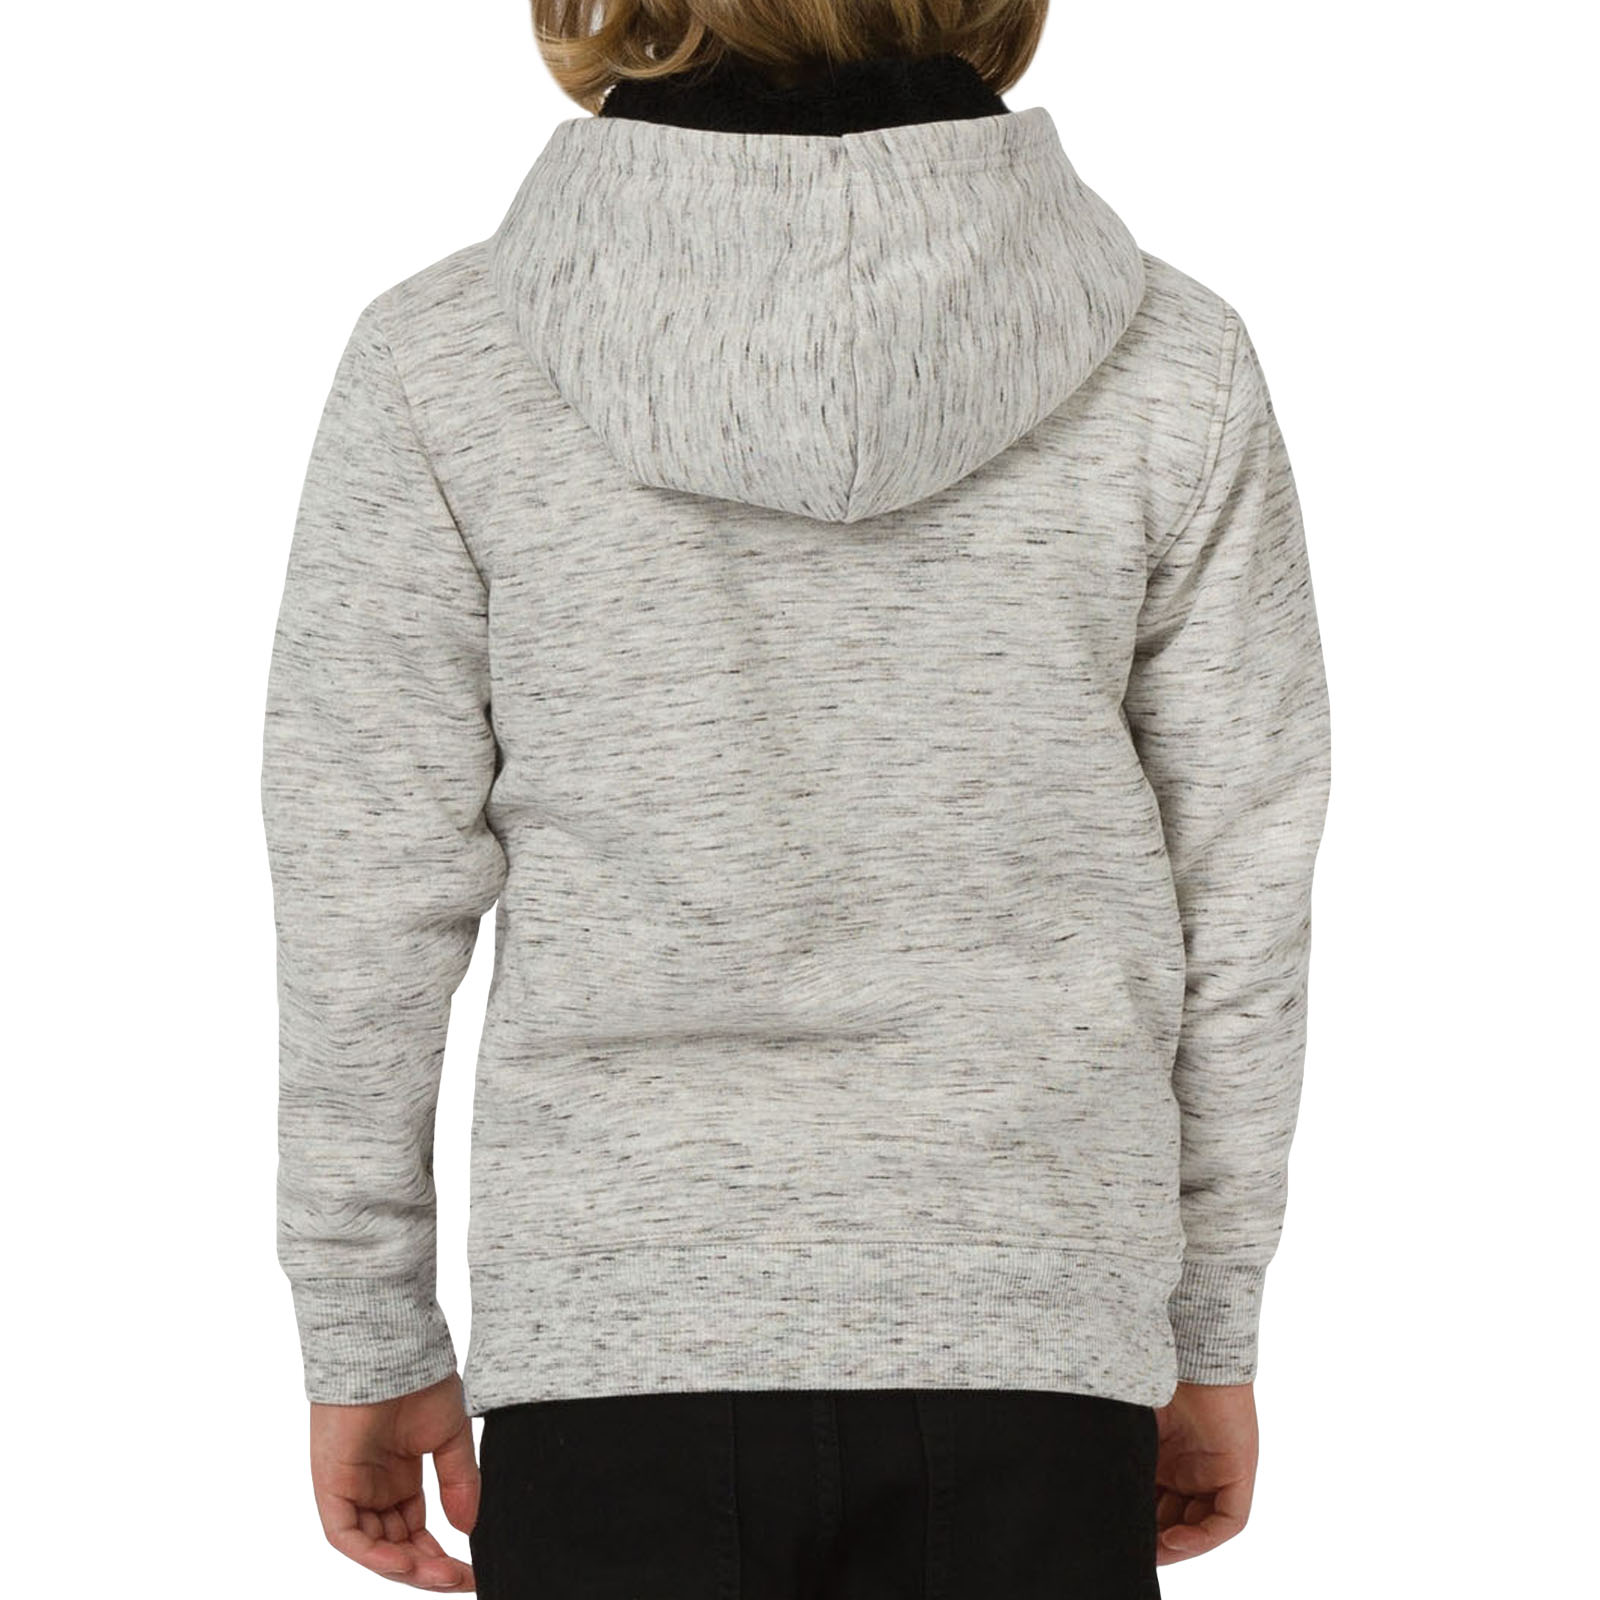 Animal-Boys-Kids-Stanto-Casual-Long-Sleeve-Zipped-Hooded-Sweatshirt-Jacket-Top thumbnail 5